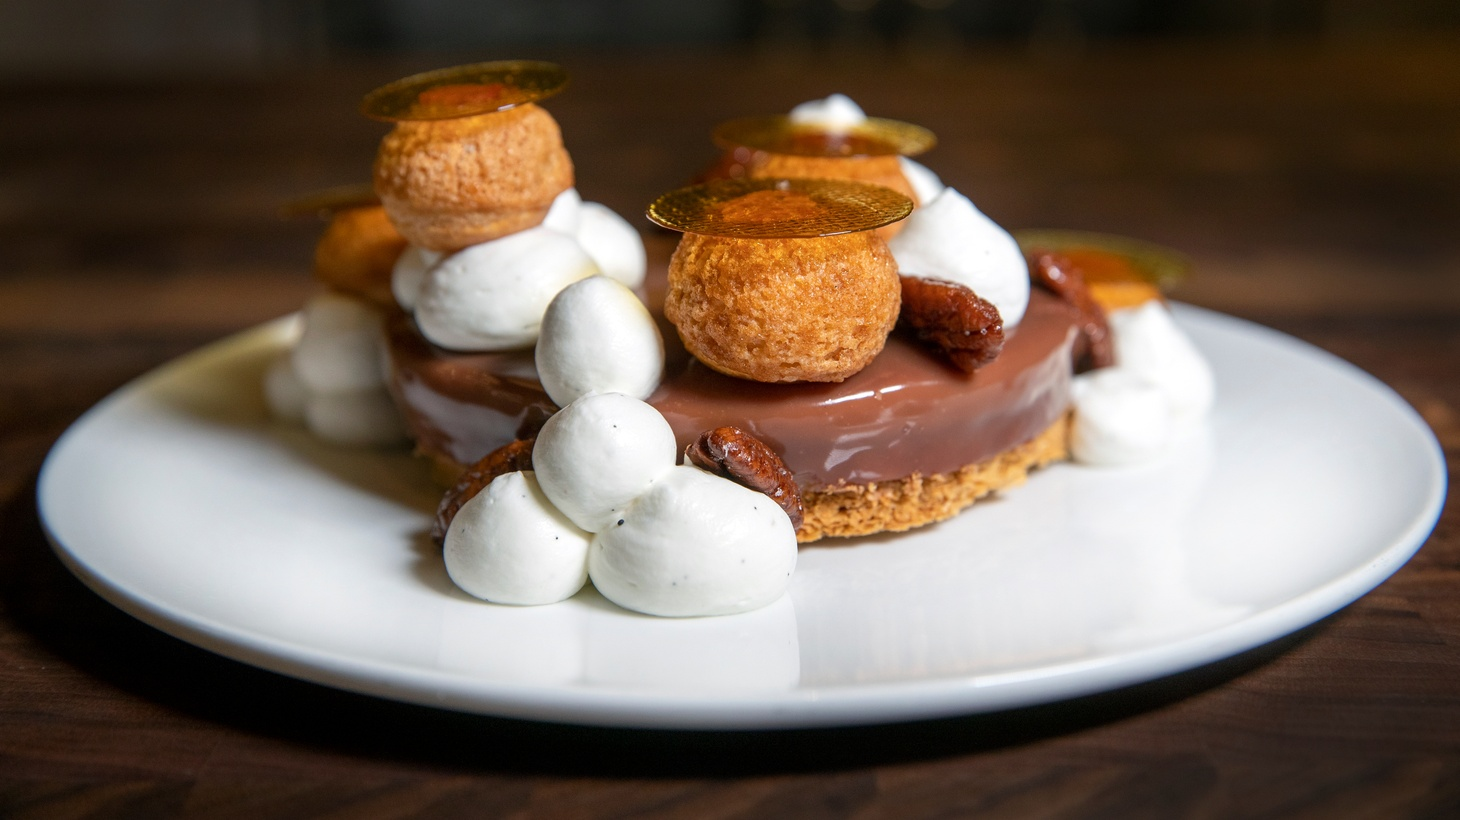 Lincoln Carson's riff on a St. Honoré cake at Bons Temps in downtown's Arts District.